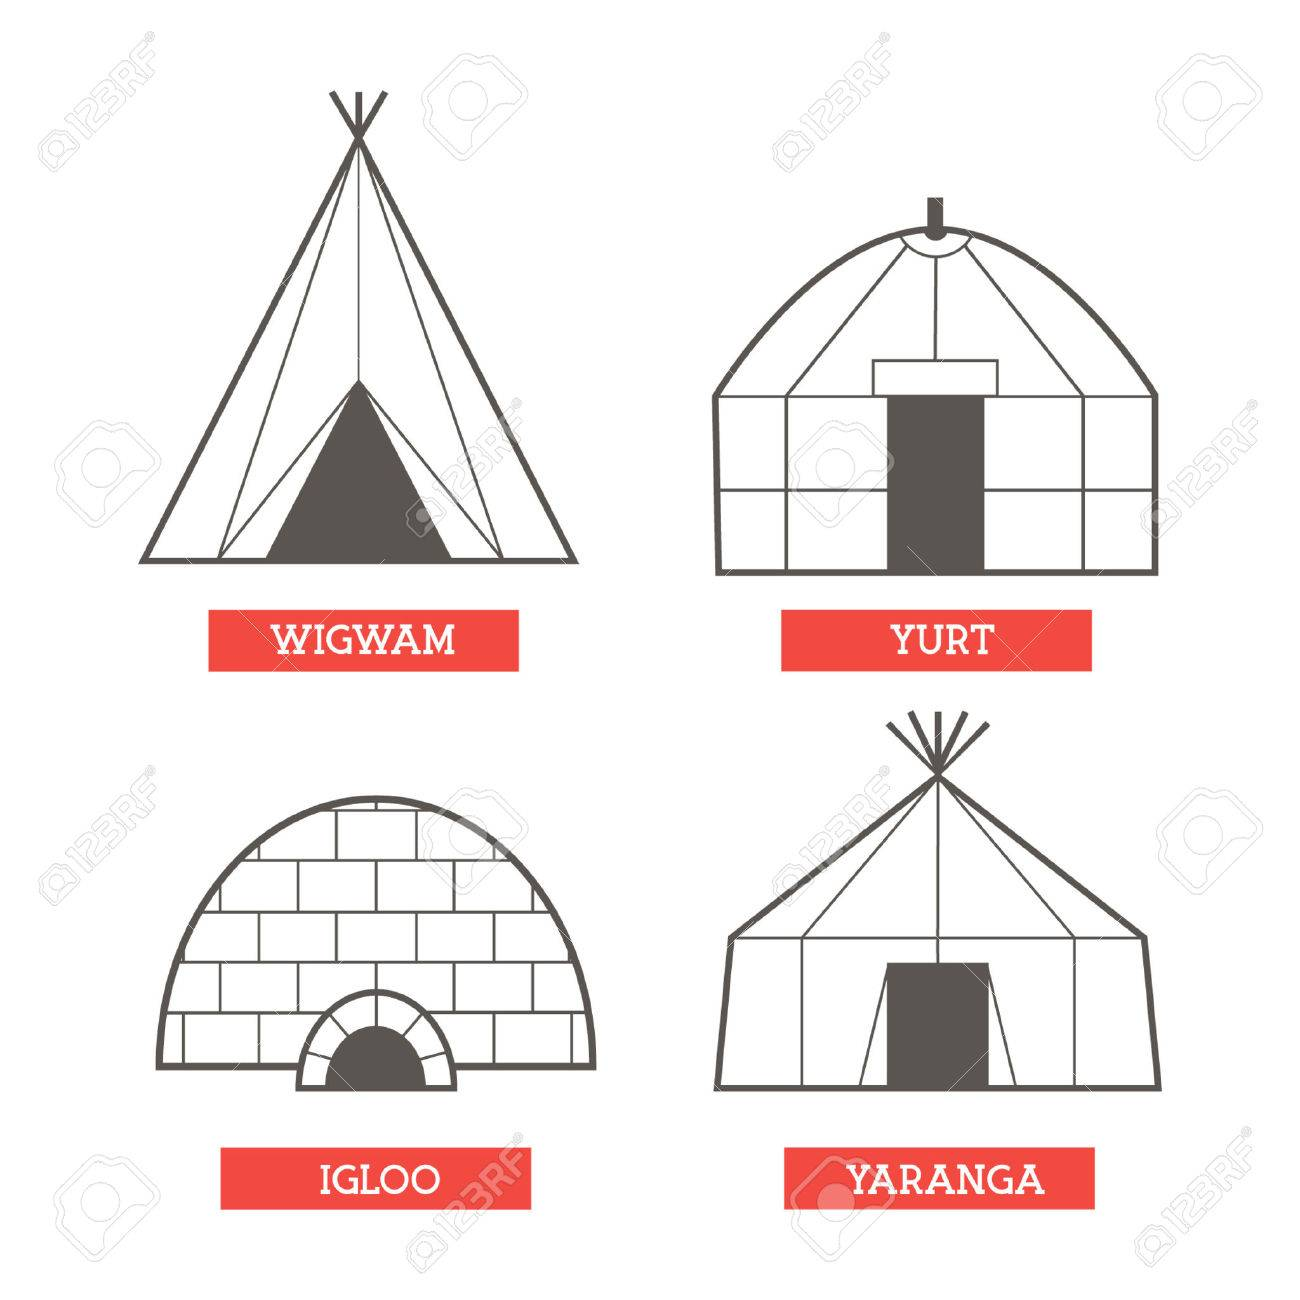 Set of 4 flat traditional houses of different nations live in canada siberia asia north america